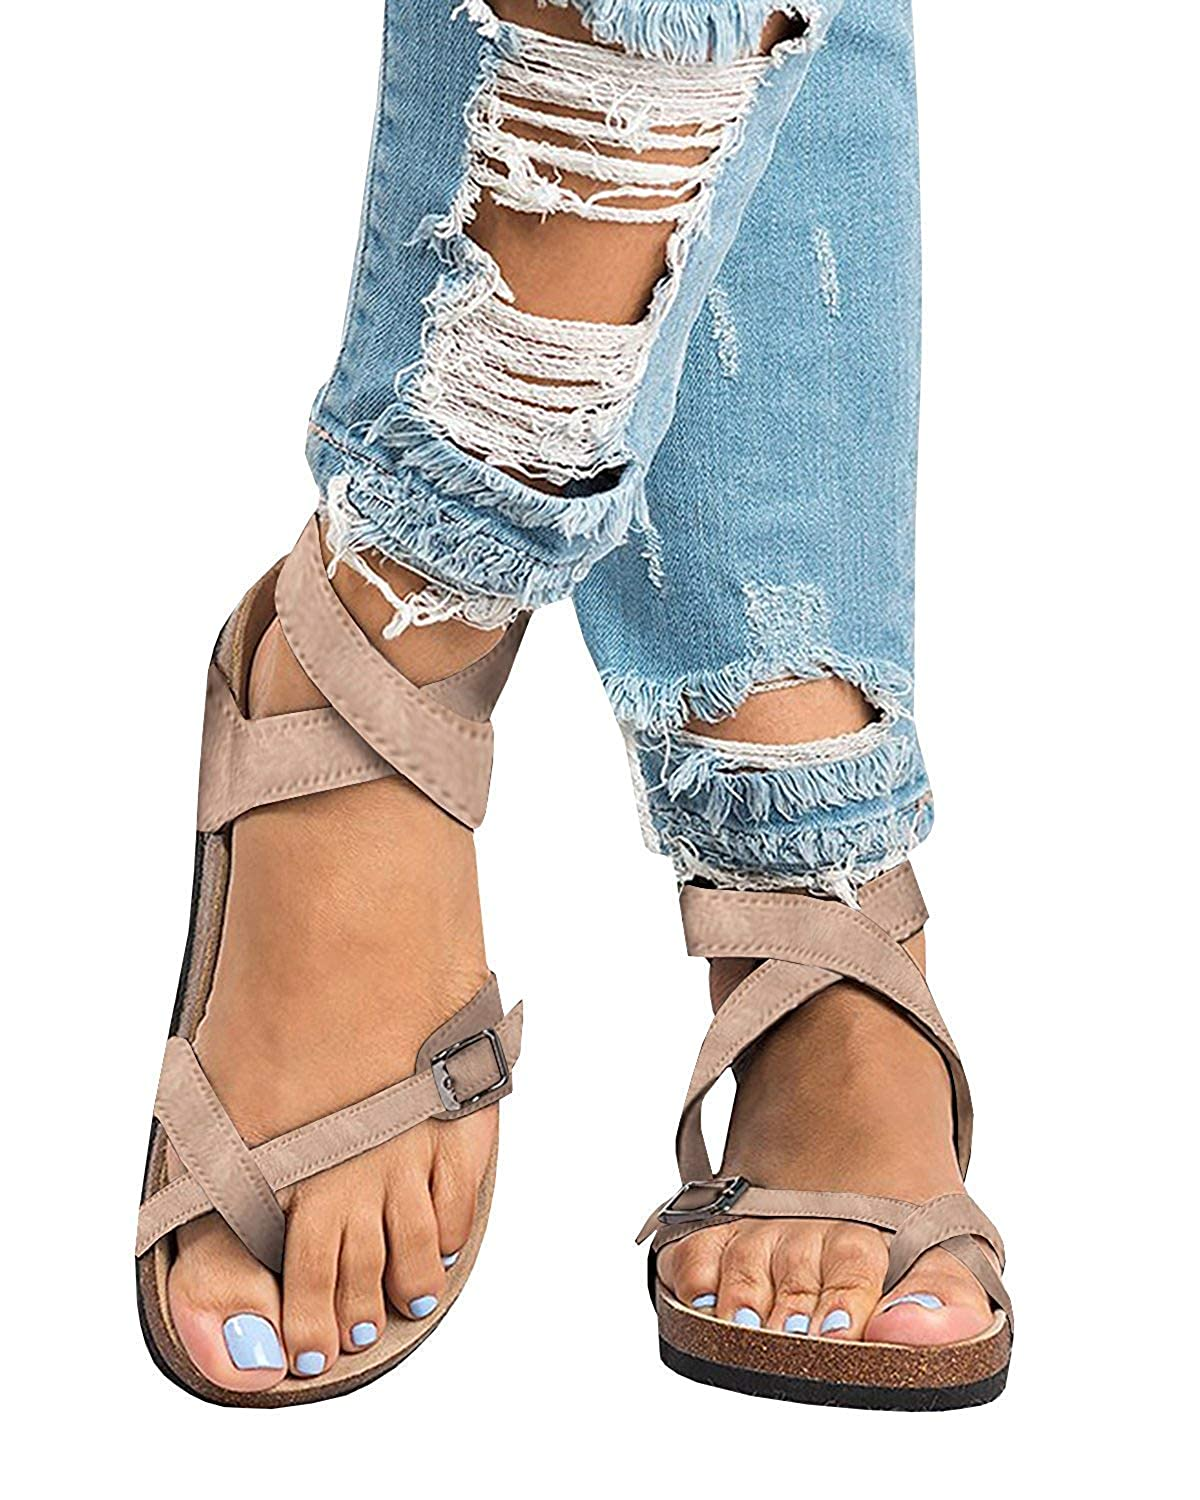 Amazon.com  Pxmoda Women s Fashion Flip Flop Gladiator Sandals Strappy Flat  Sandal Shoes  Clothing